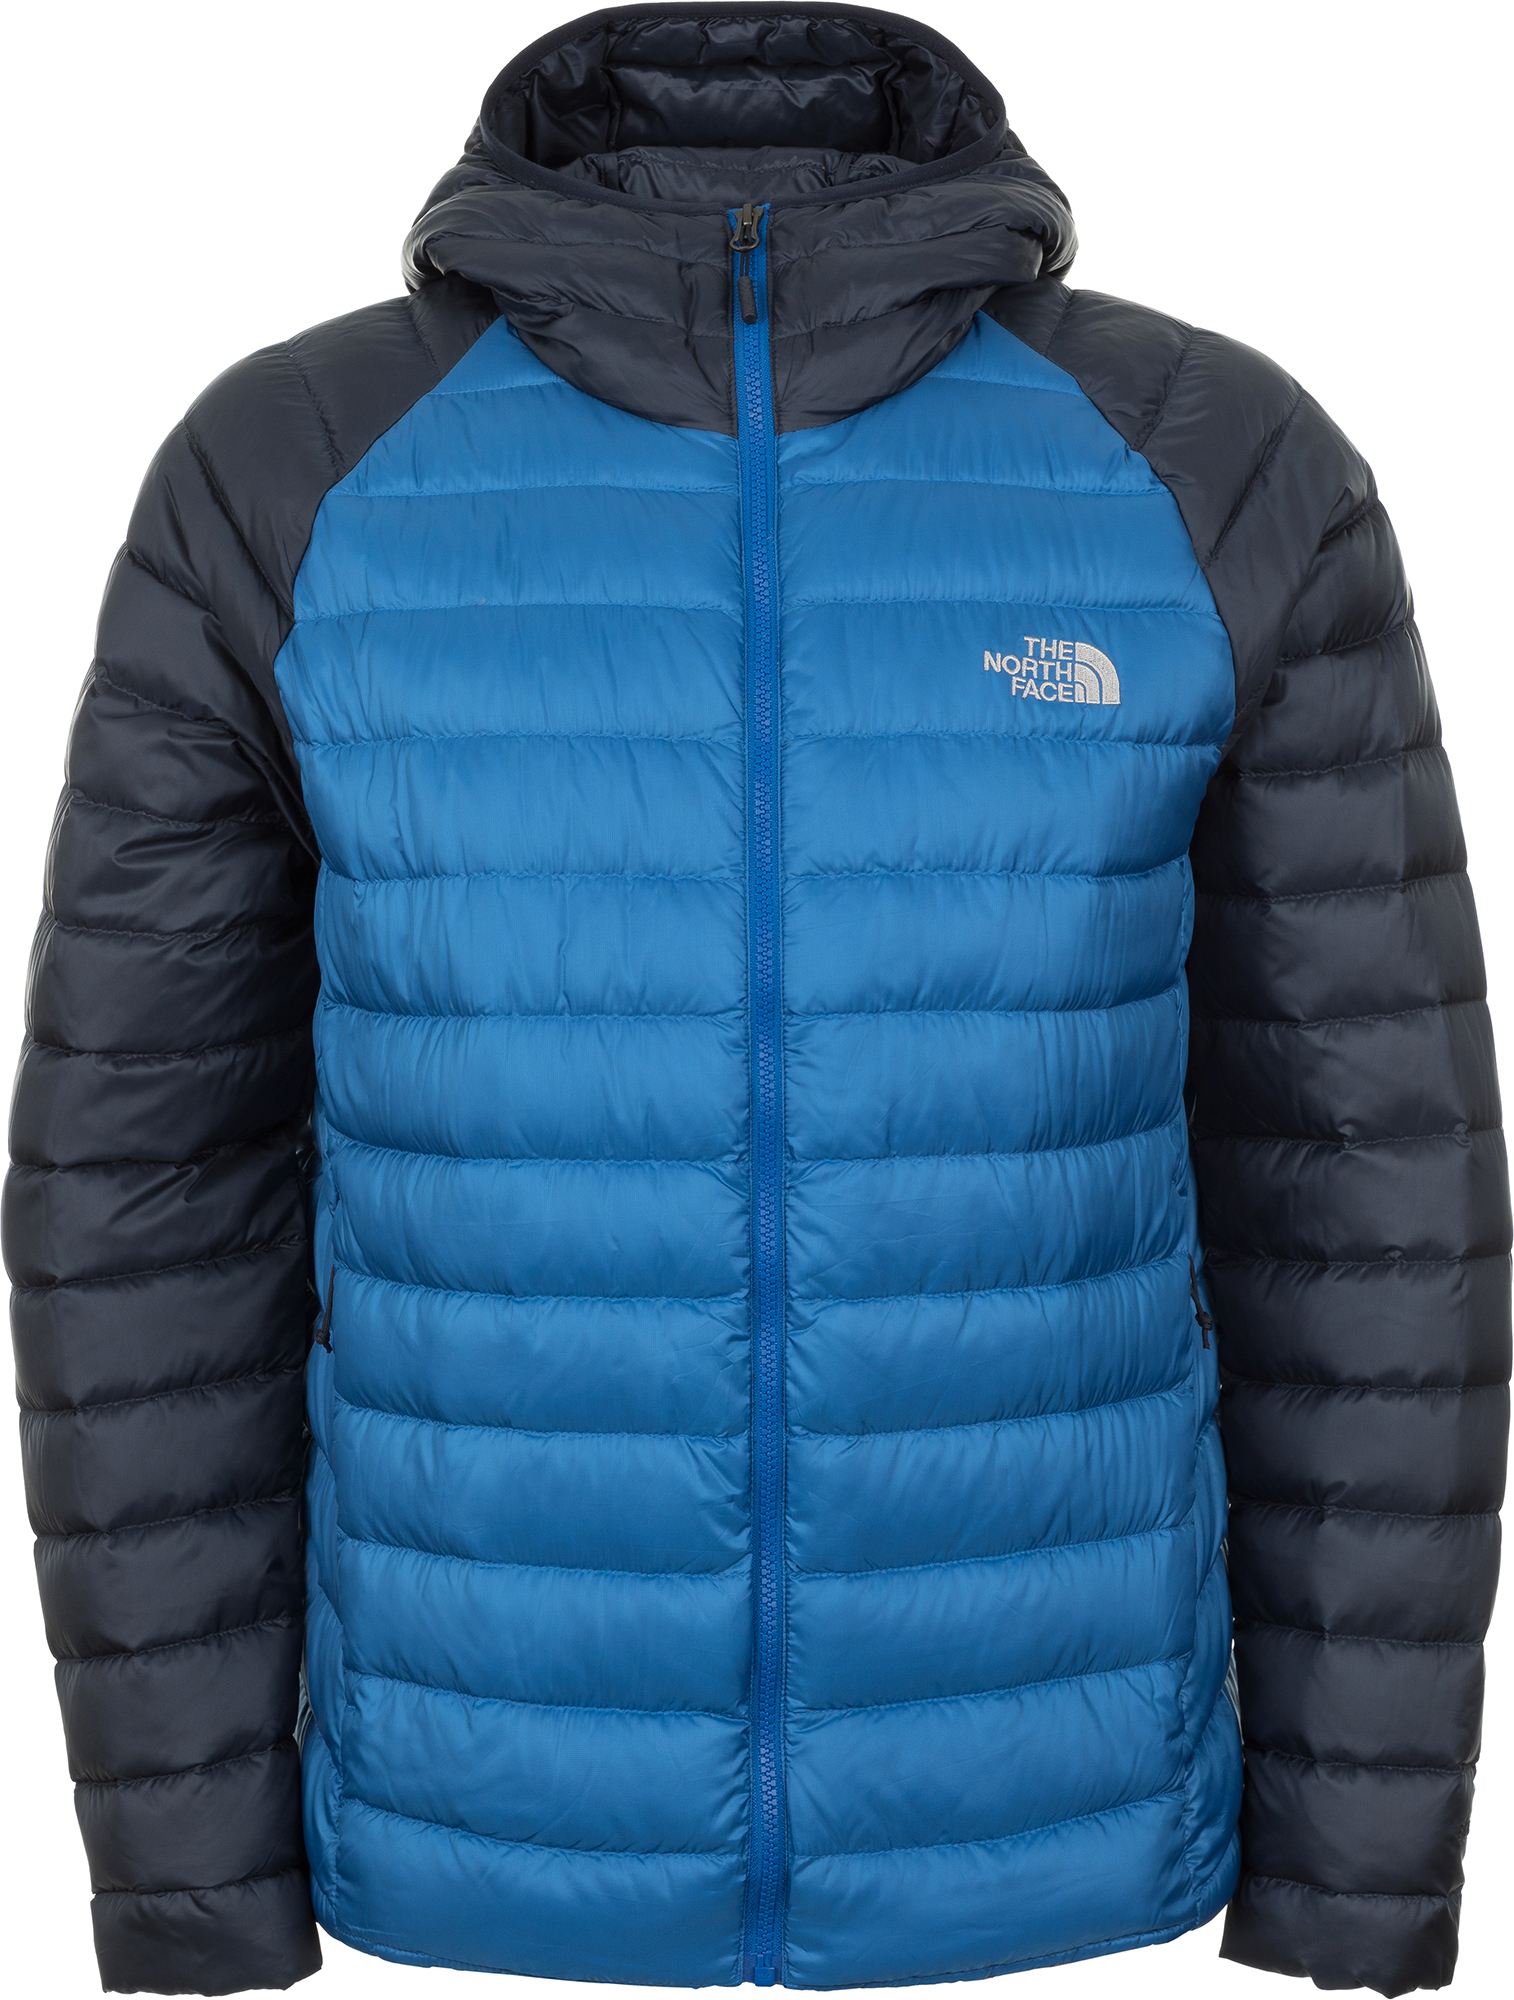 The North Face Куртка пуховая мужская The North Face Trevail, размер 48